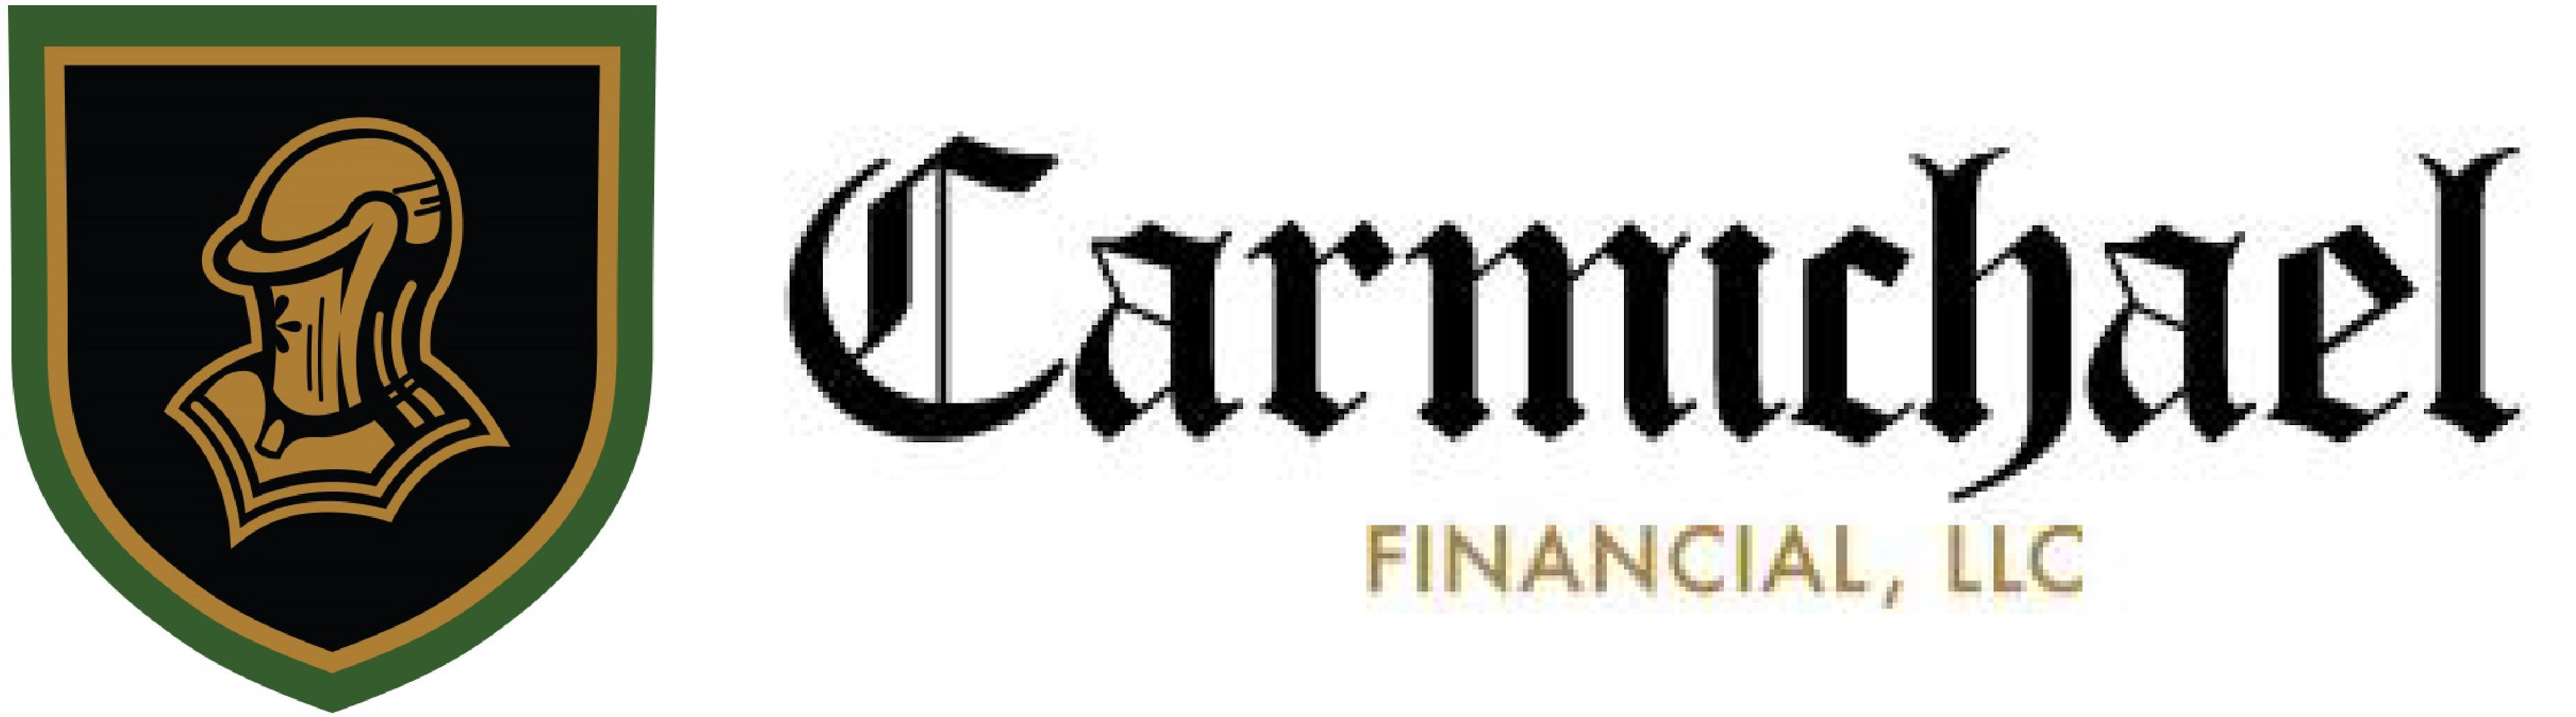 Carmichael Financial, LLC